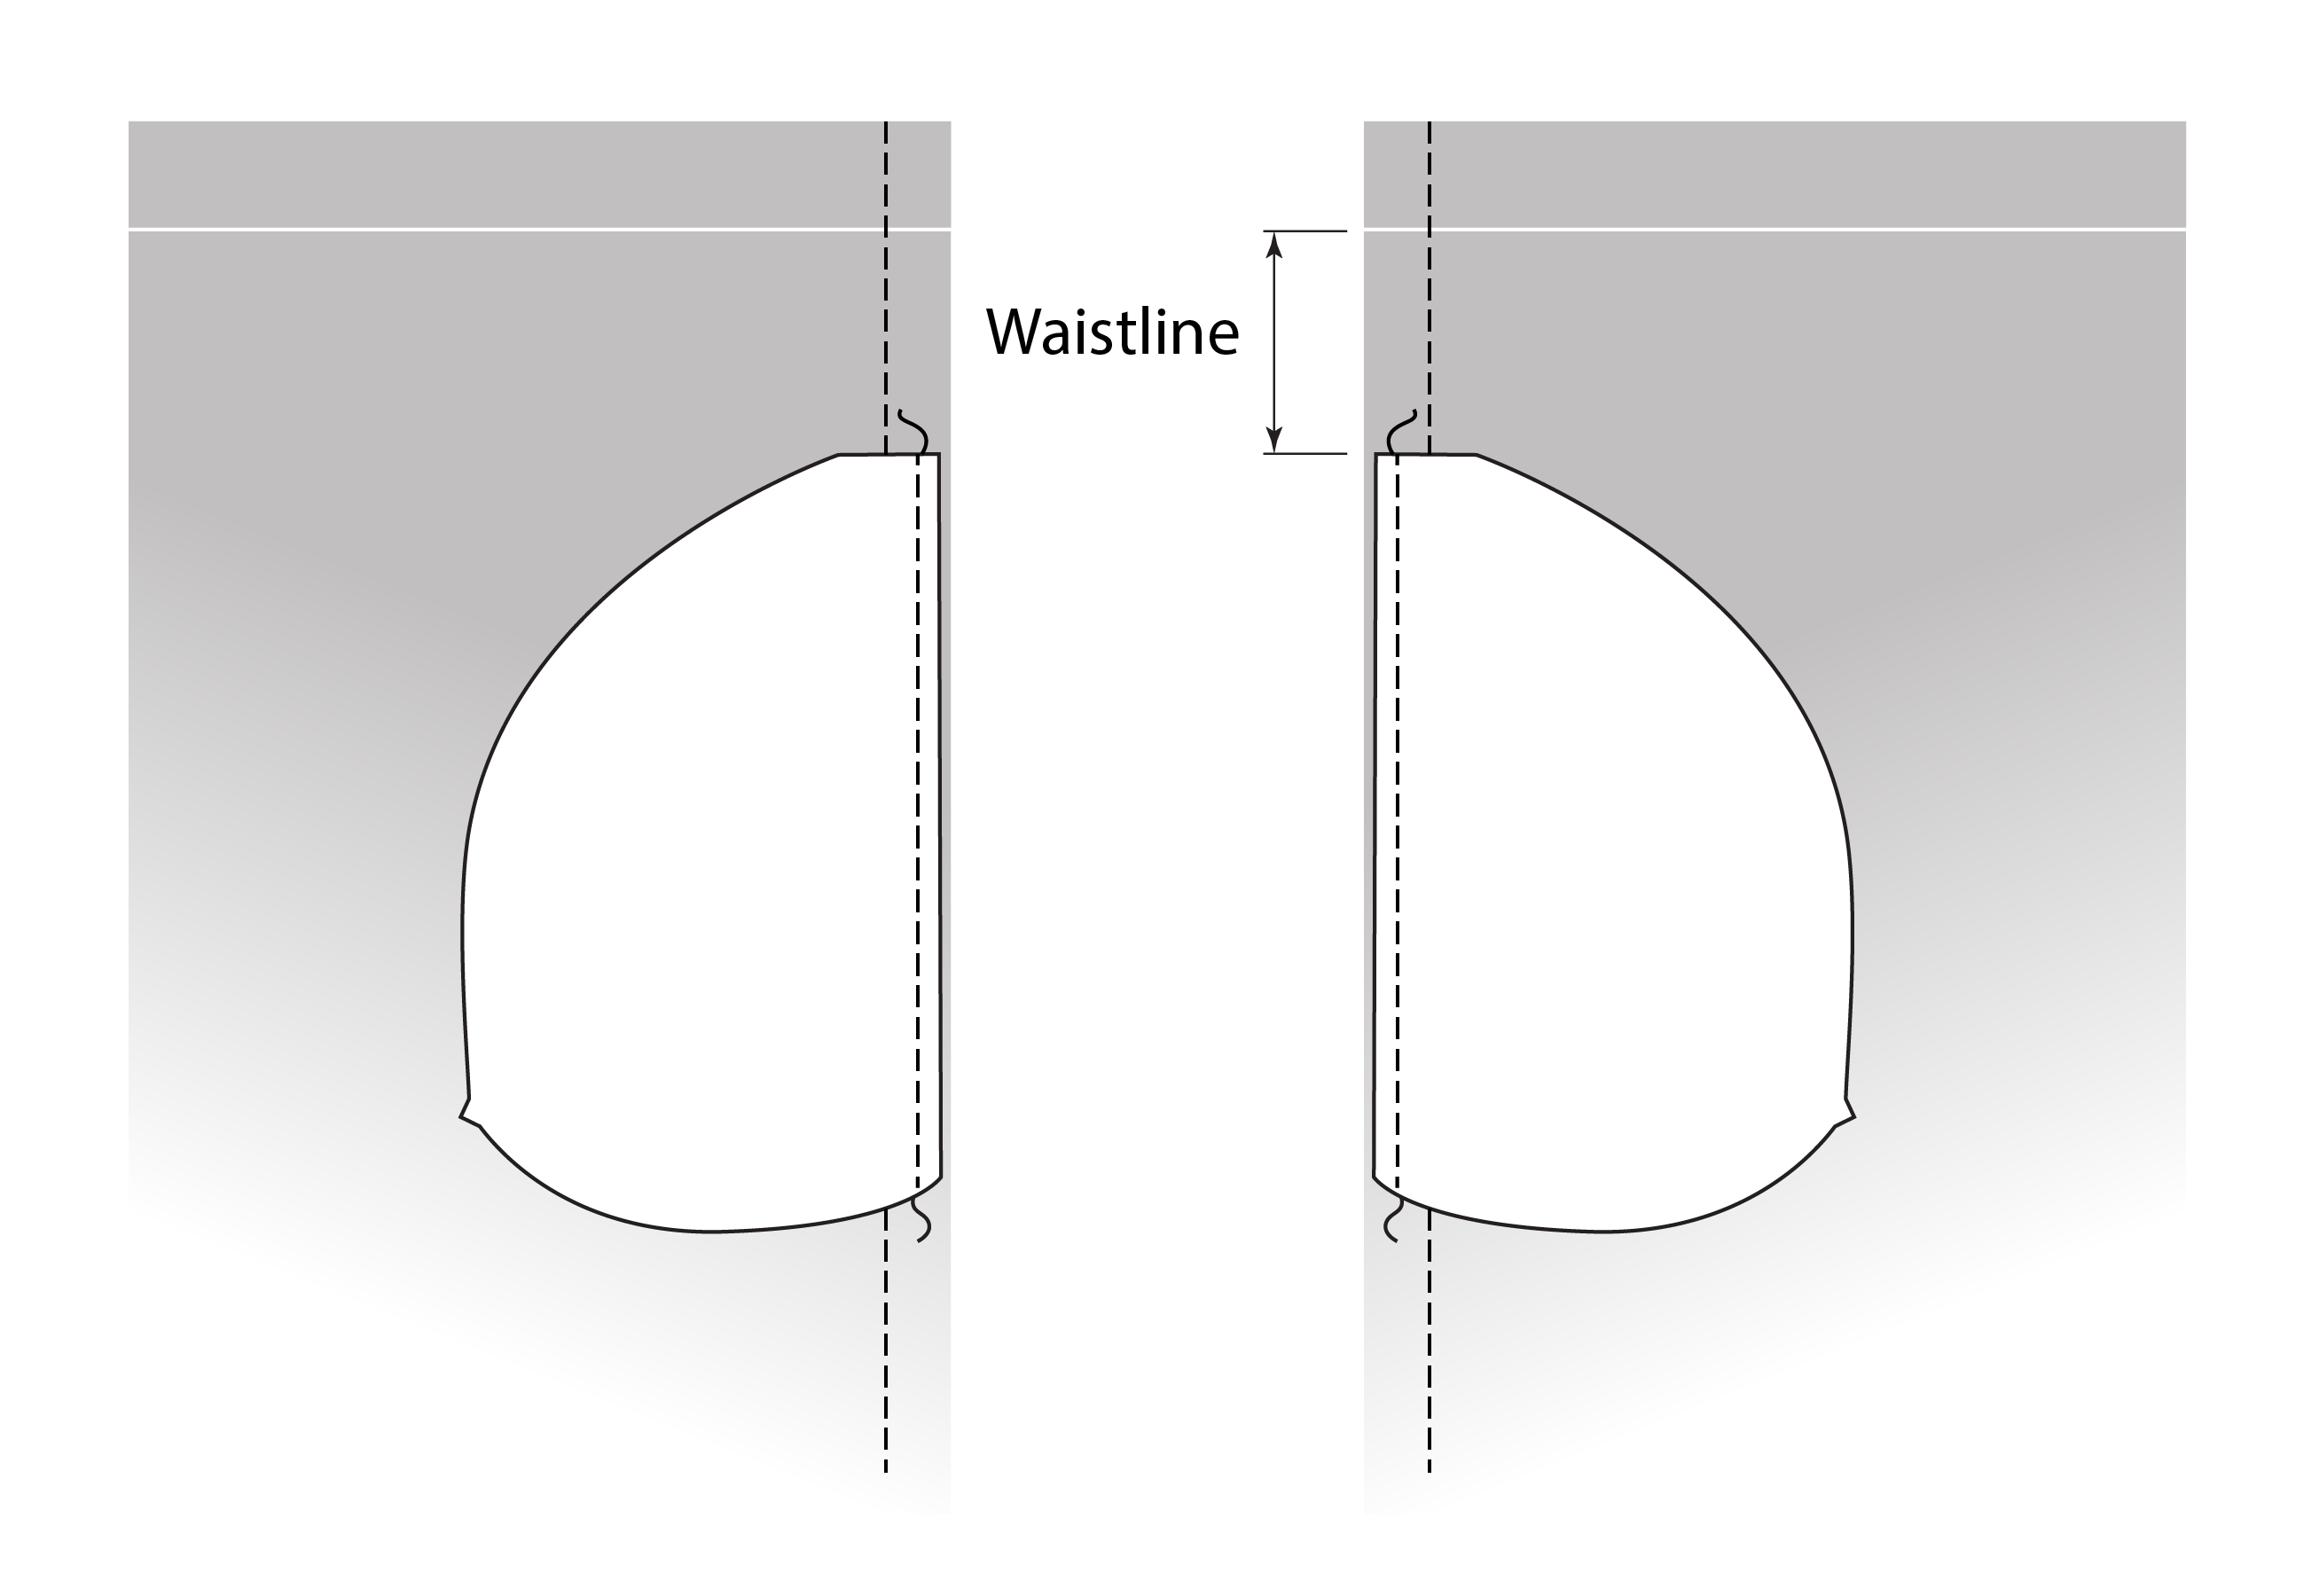 Illustration showing pocket sewn with 14 inch seam allowance.